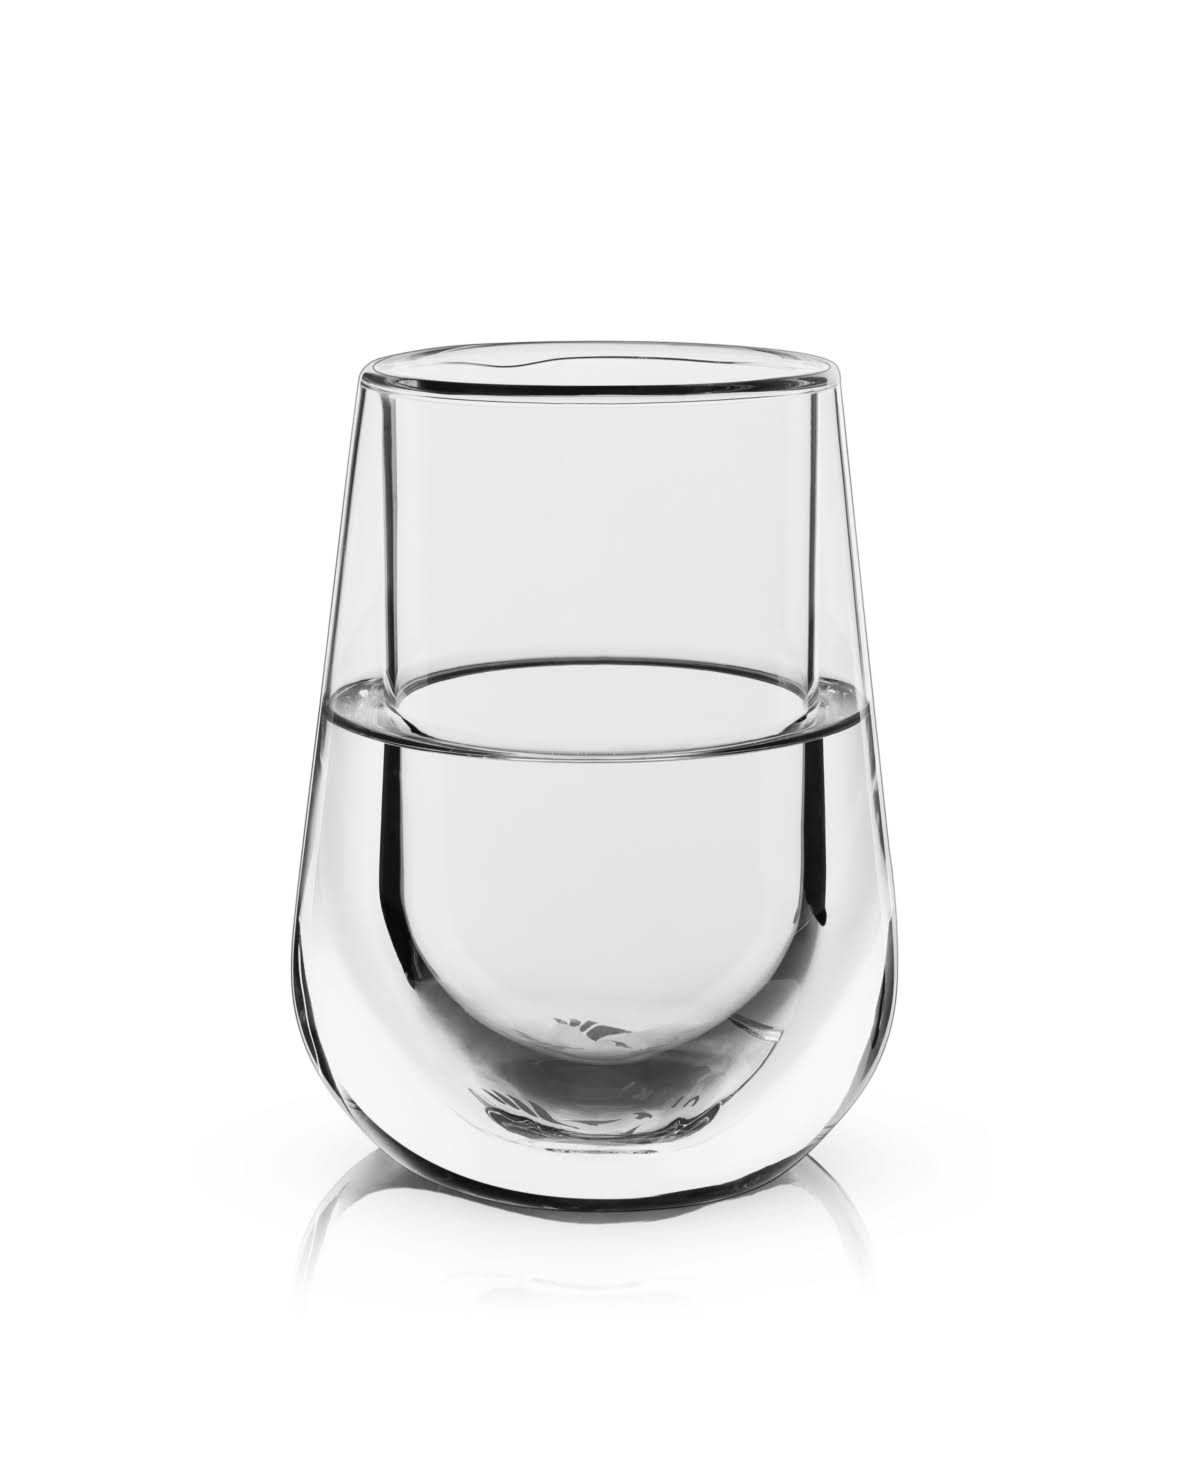 Double-Walled Chiling Wine Glass